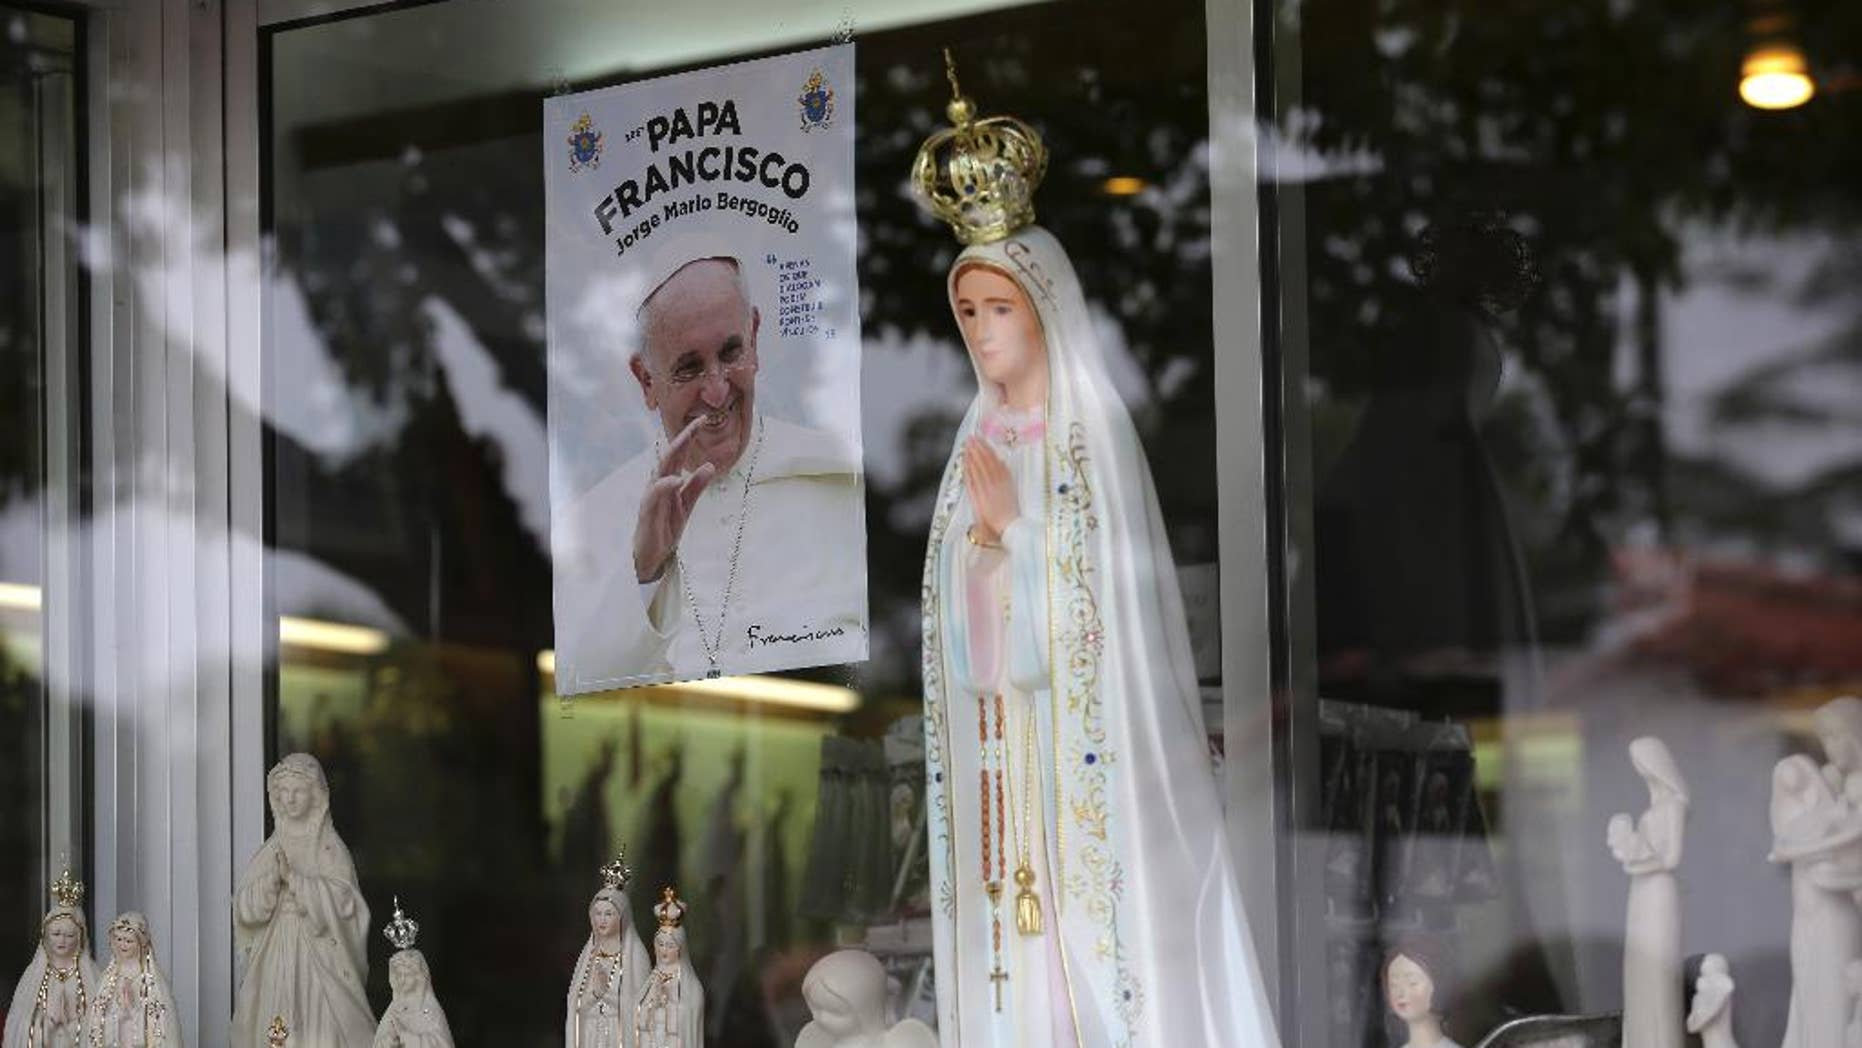 In this photo taken May 4 2017, a photo of Pope Francis, Francisco in Portuguese, is displayed on the window of a shop selling statues of Our Lady of Fatima in the village of Fatima, Portugal. Pope Francis is visiting the Fatima shrine on May 12 and 13 to canonize two Portuguese shepherd children who say they saw visions of the Virgin Mary 100-years ago. (AP Photo/Armando Franca)